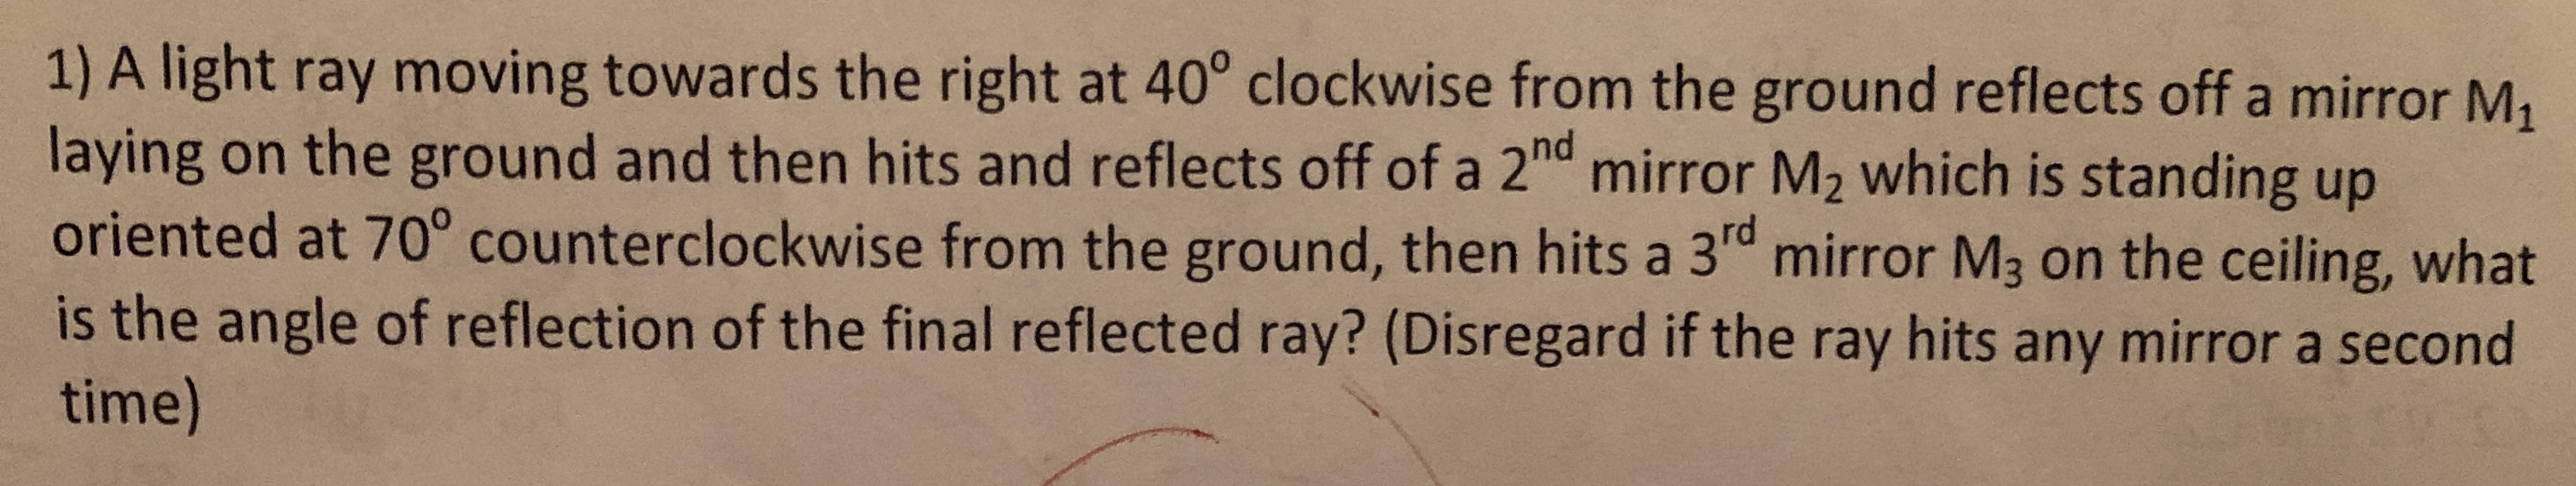 """1) A light ray moving towards the right at 40° clockwise from the ground reflects off a mirror M laying on the ground and then hits and reflects off of a 2""""d mirror M2 which is standing up oriented at 70° counterclockwise from the ground, then hits a 3rd mirror M3 on the ceiling, what is the angle of reflection of the final reflected ray? (Disregard if the ray hits any mirror a second time)"""